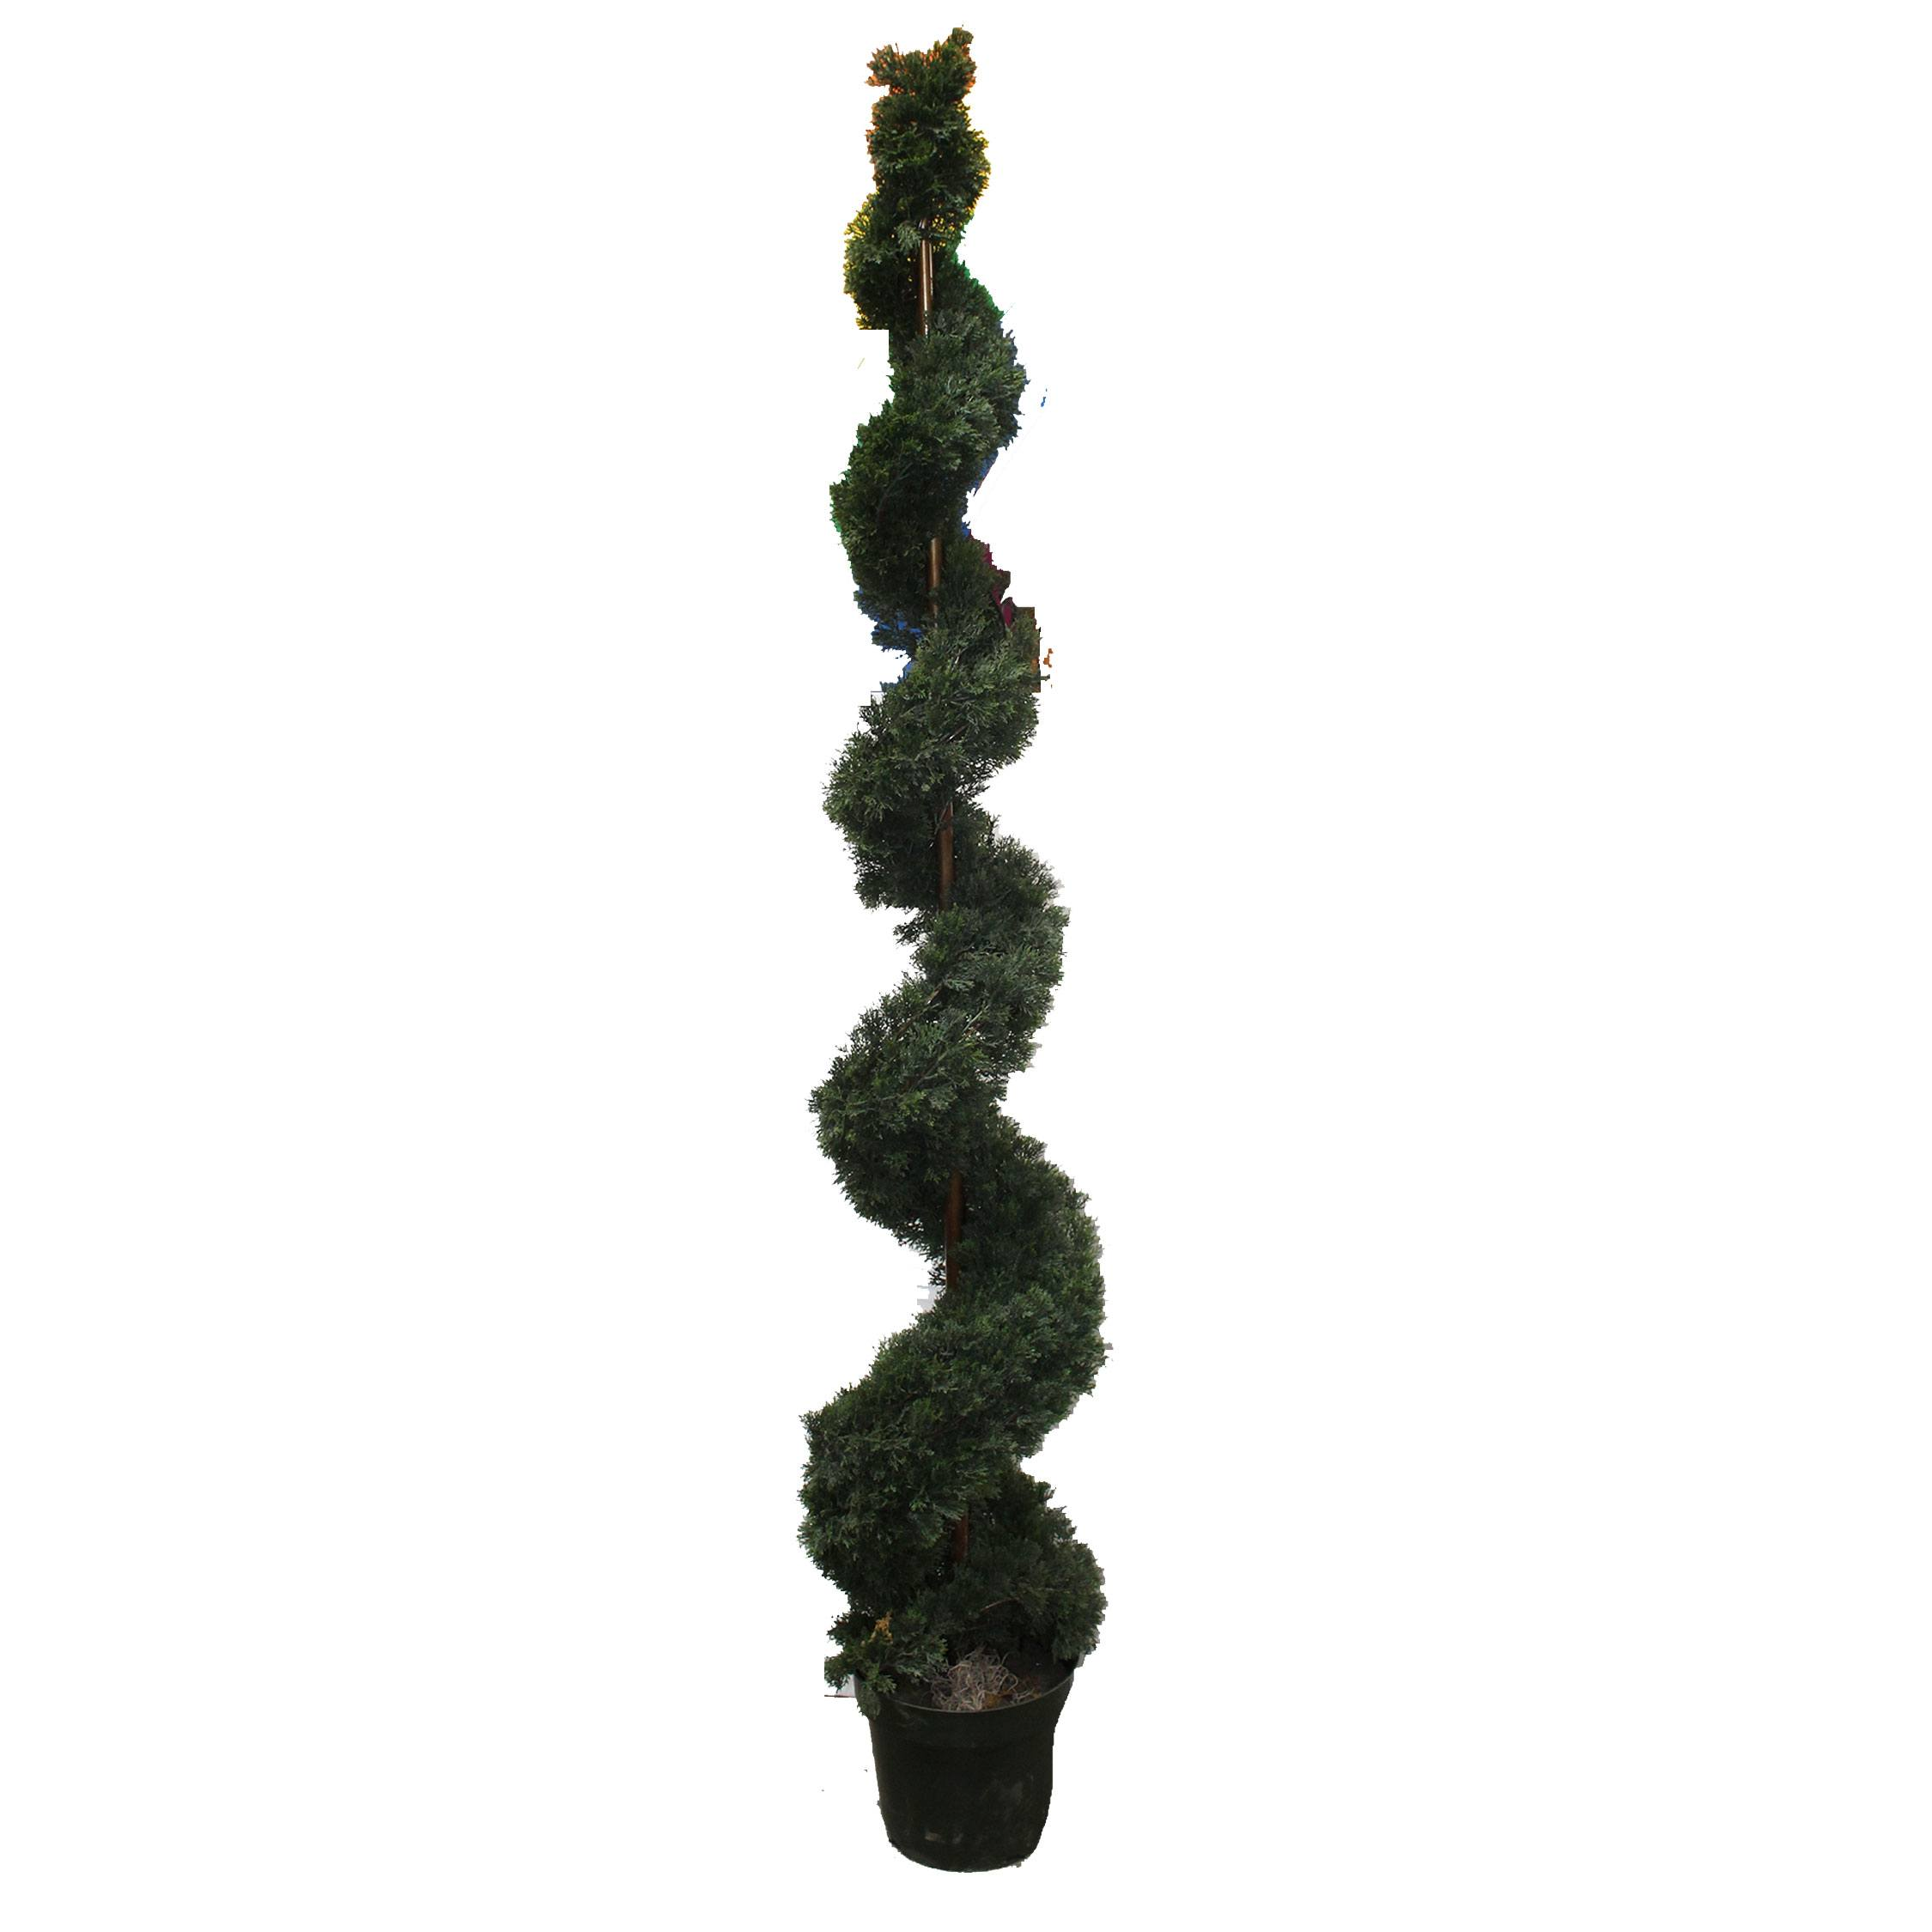 Spiral Topiary Tree Artificial Decor Props Pacific Event Productions